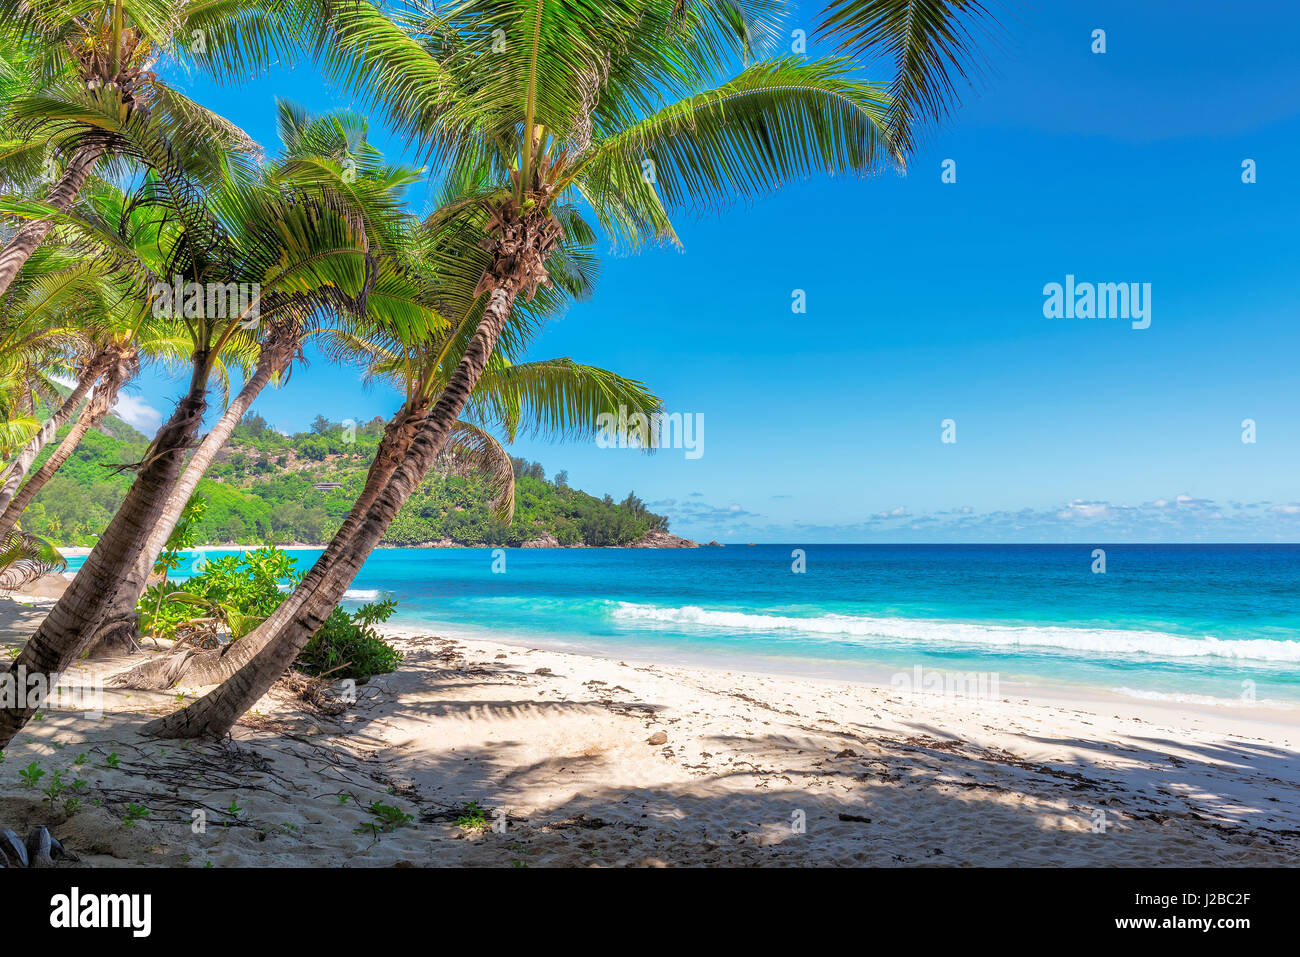 Plage Anse Intendance incroyable, l'île de Mahé, Seychelles. Photo Stock